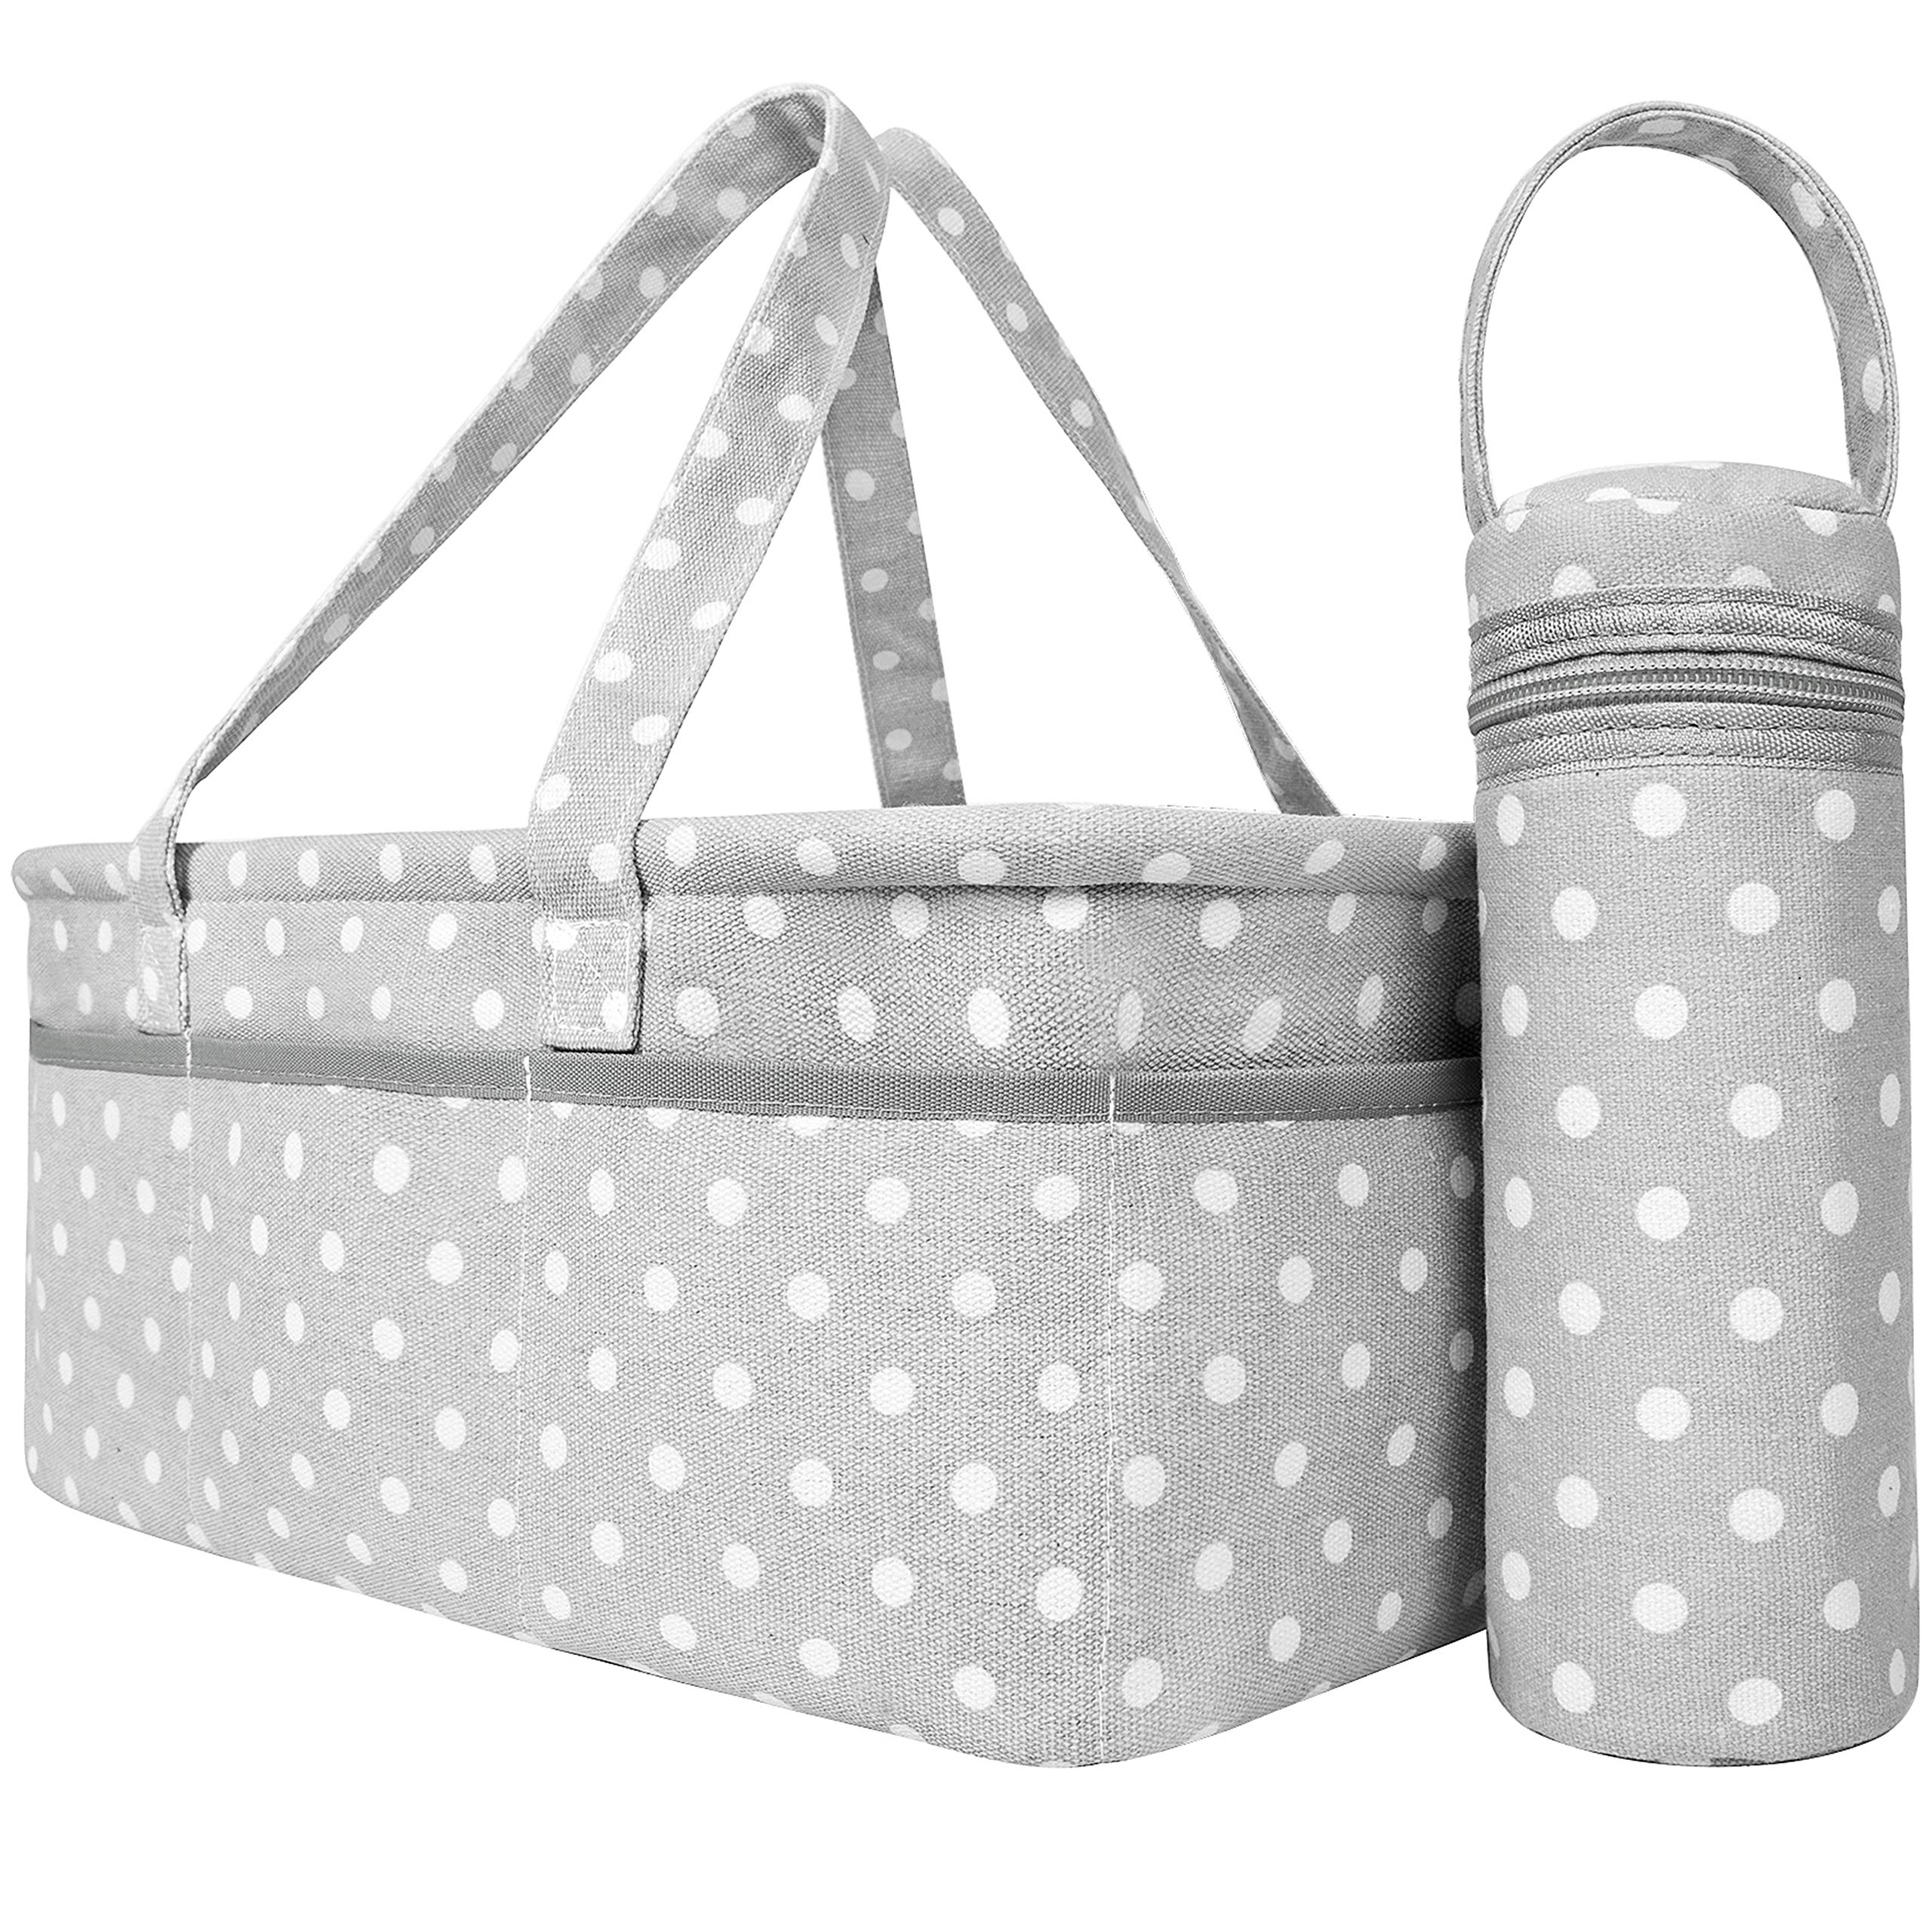 Baby Diaper Caddy Organizer   Baby Shower Registry Must Haves For Boy Girl Gifts Newborn Essentials Basket   Nursery Decor Changing Table Storage For New Mom With Bottle Cooler Bag by Sweet Carling